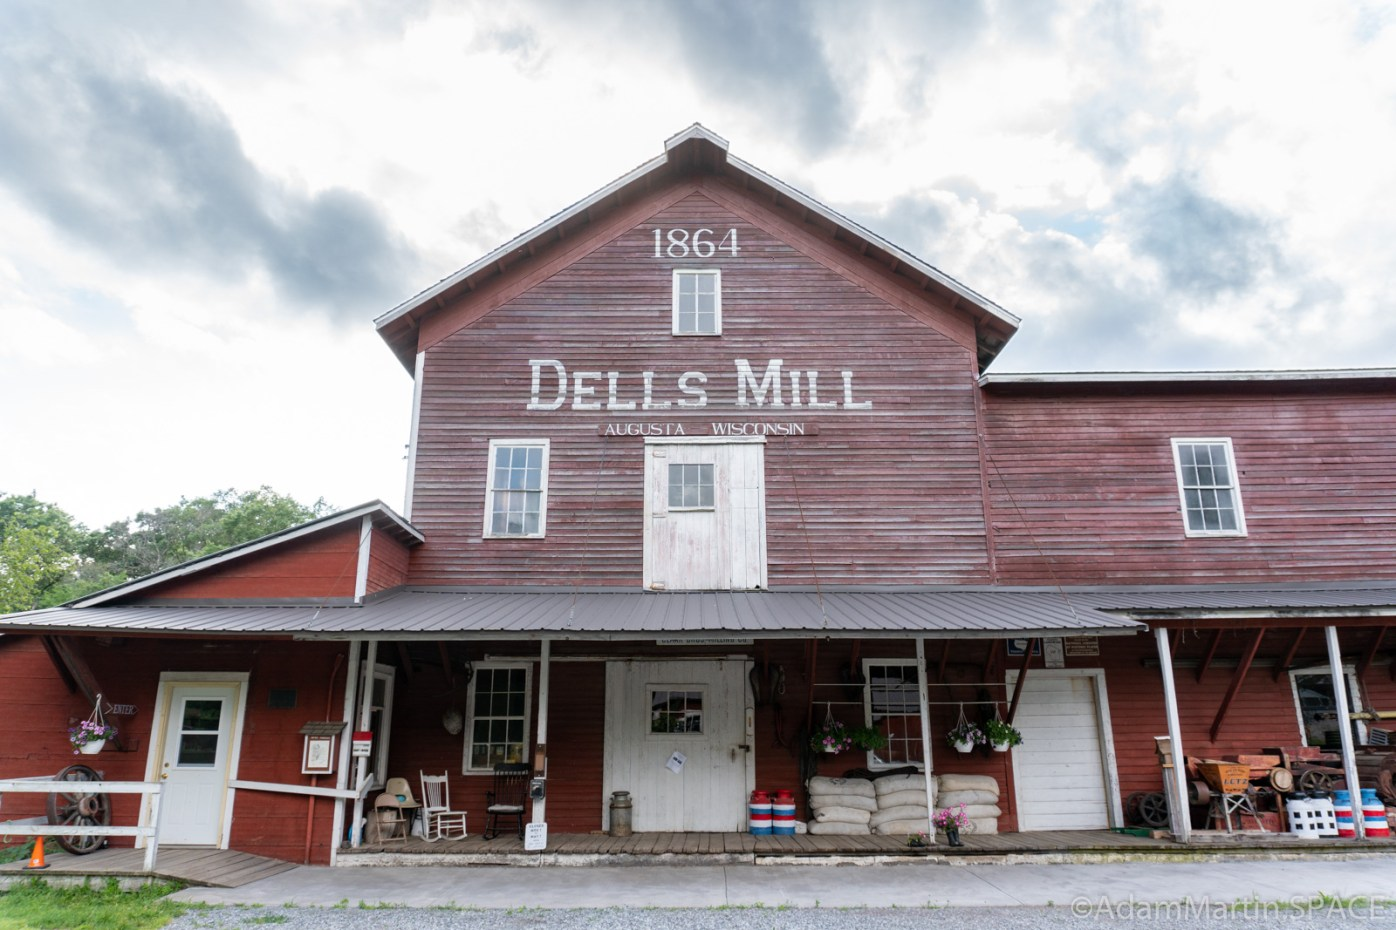 The Dells Mill & Museum